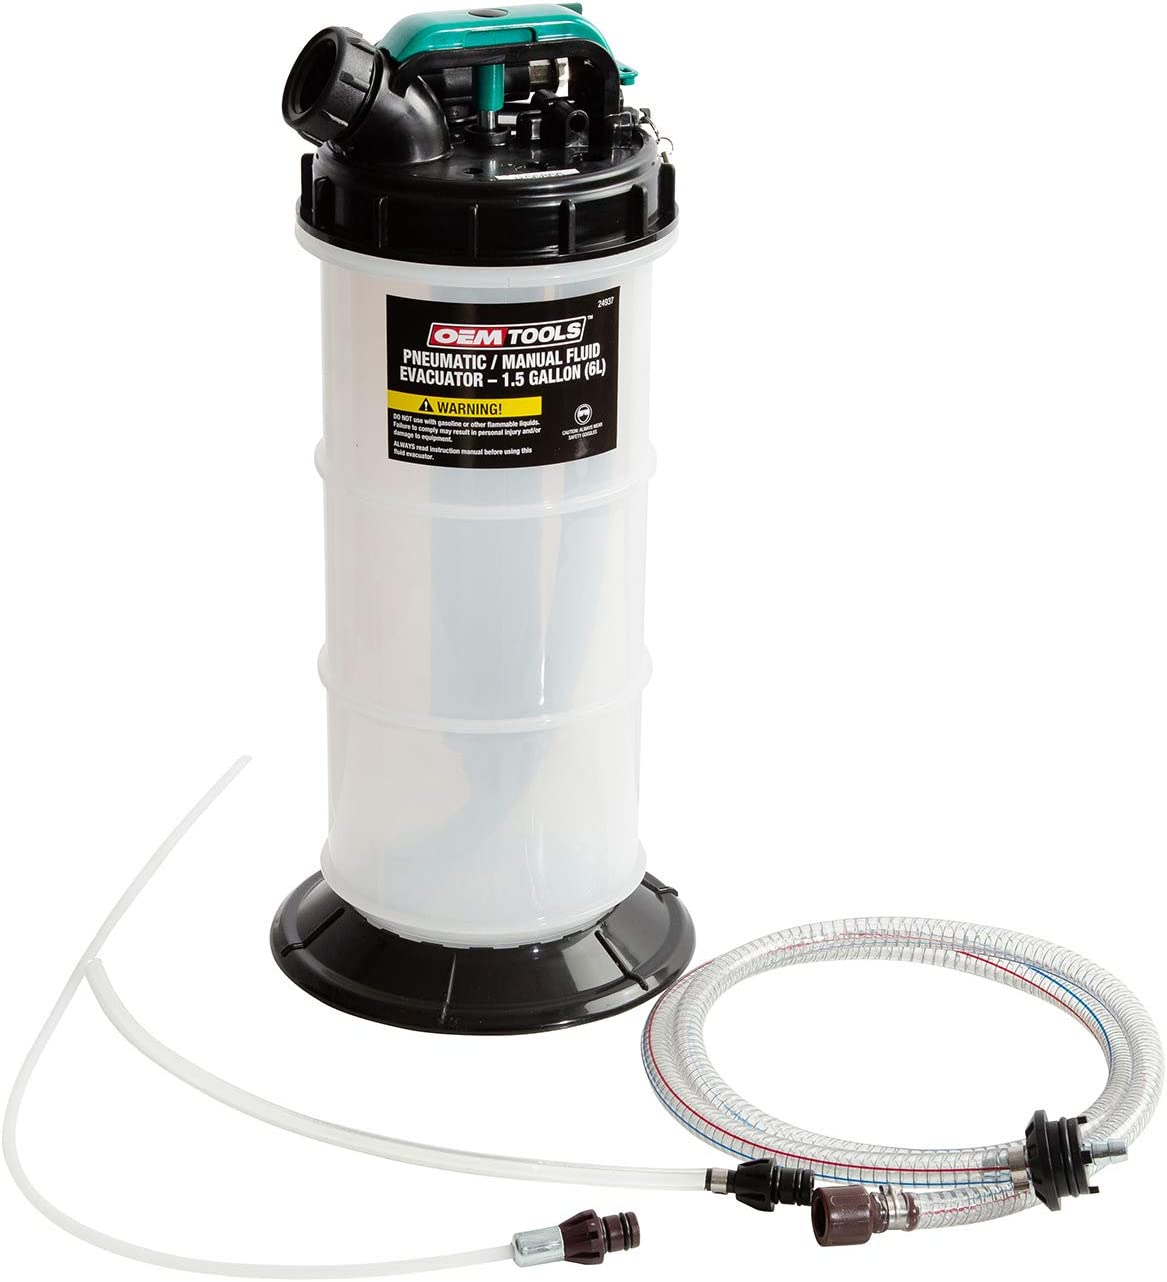 OEMTOOLS 6.0 Liter 24937 Pneumatic/Manual Fluid Extractor 1.5 Gallon (6L)